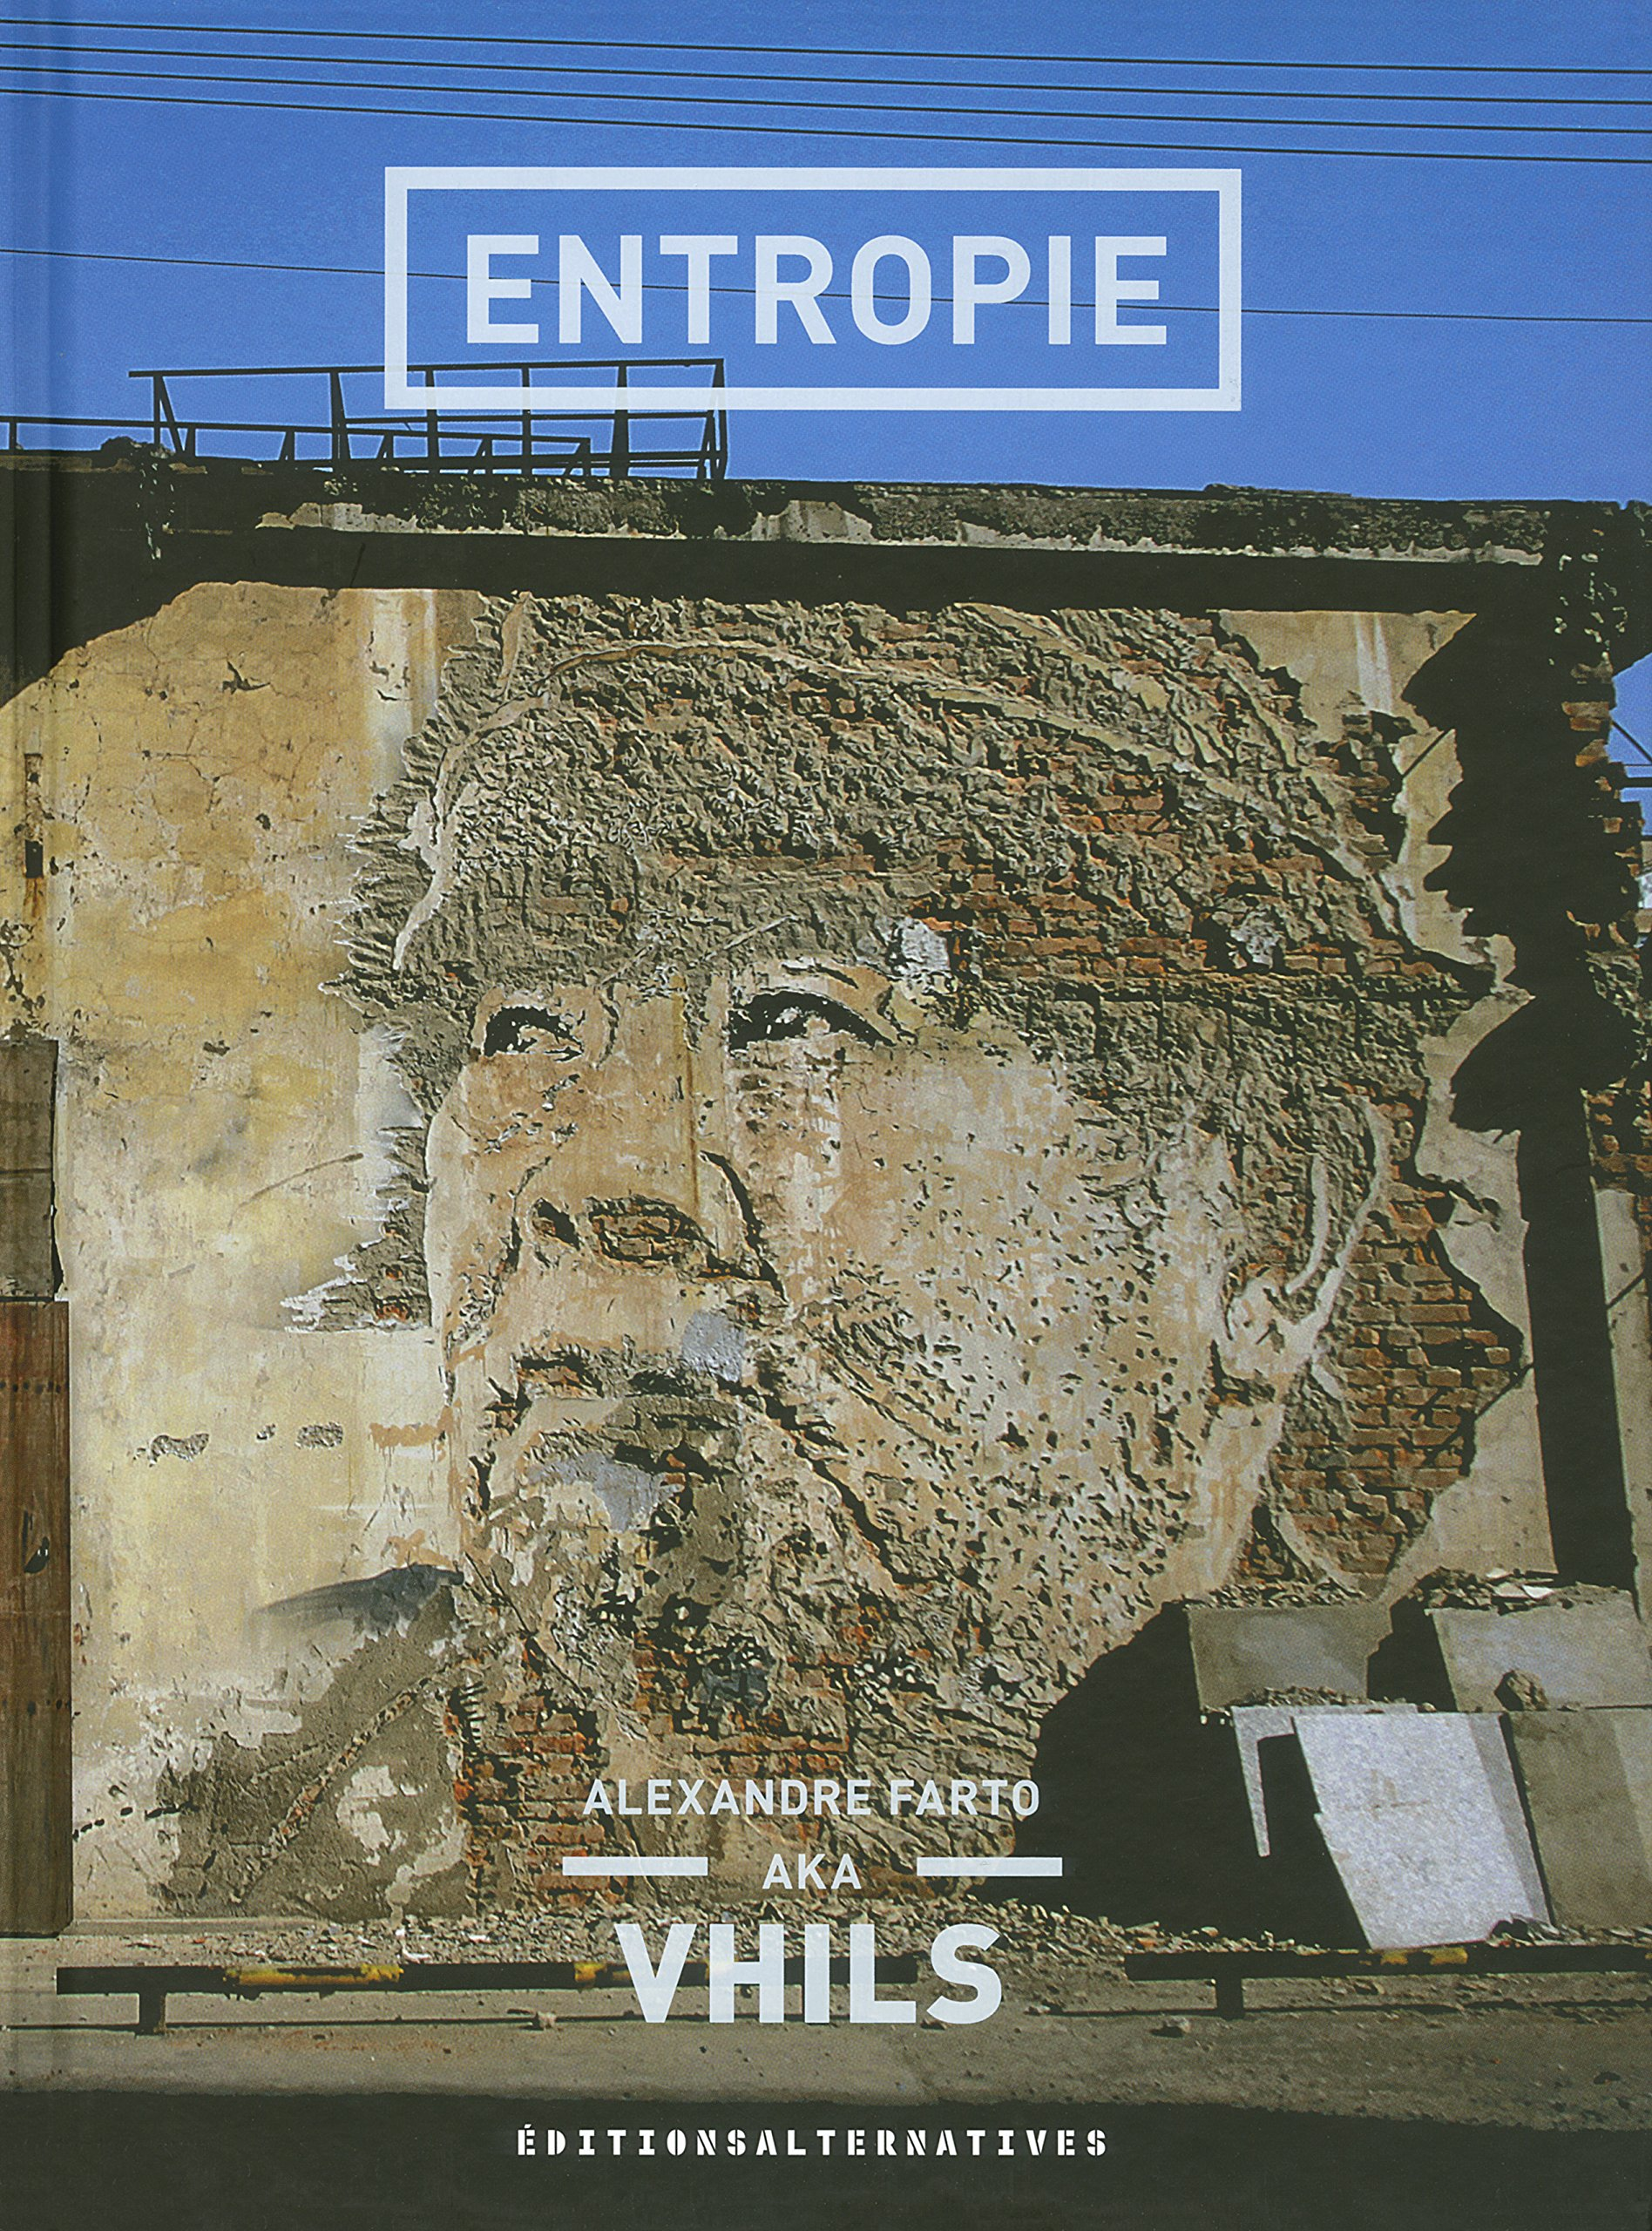 Entropie Relié – 18 septembre 2014 Vhils KennisTranslations Alternatives 2072543290